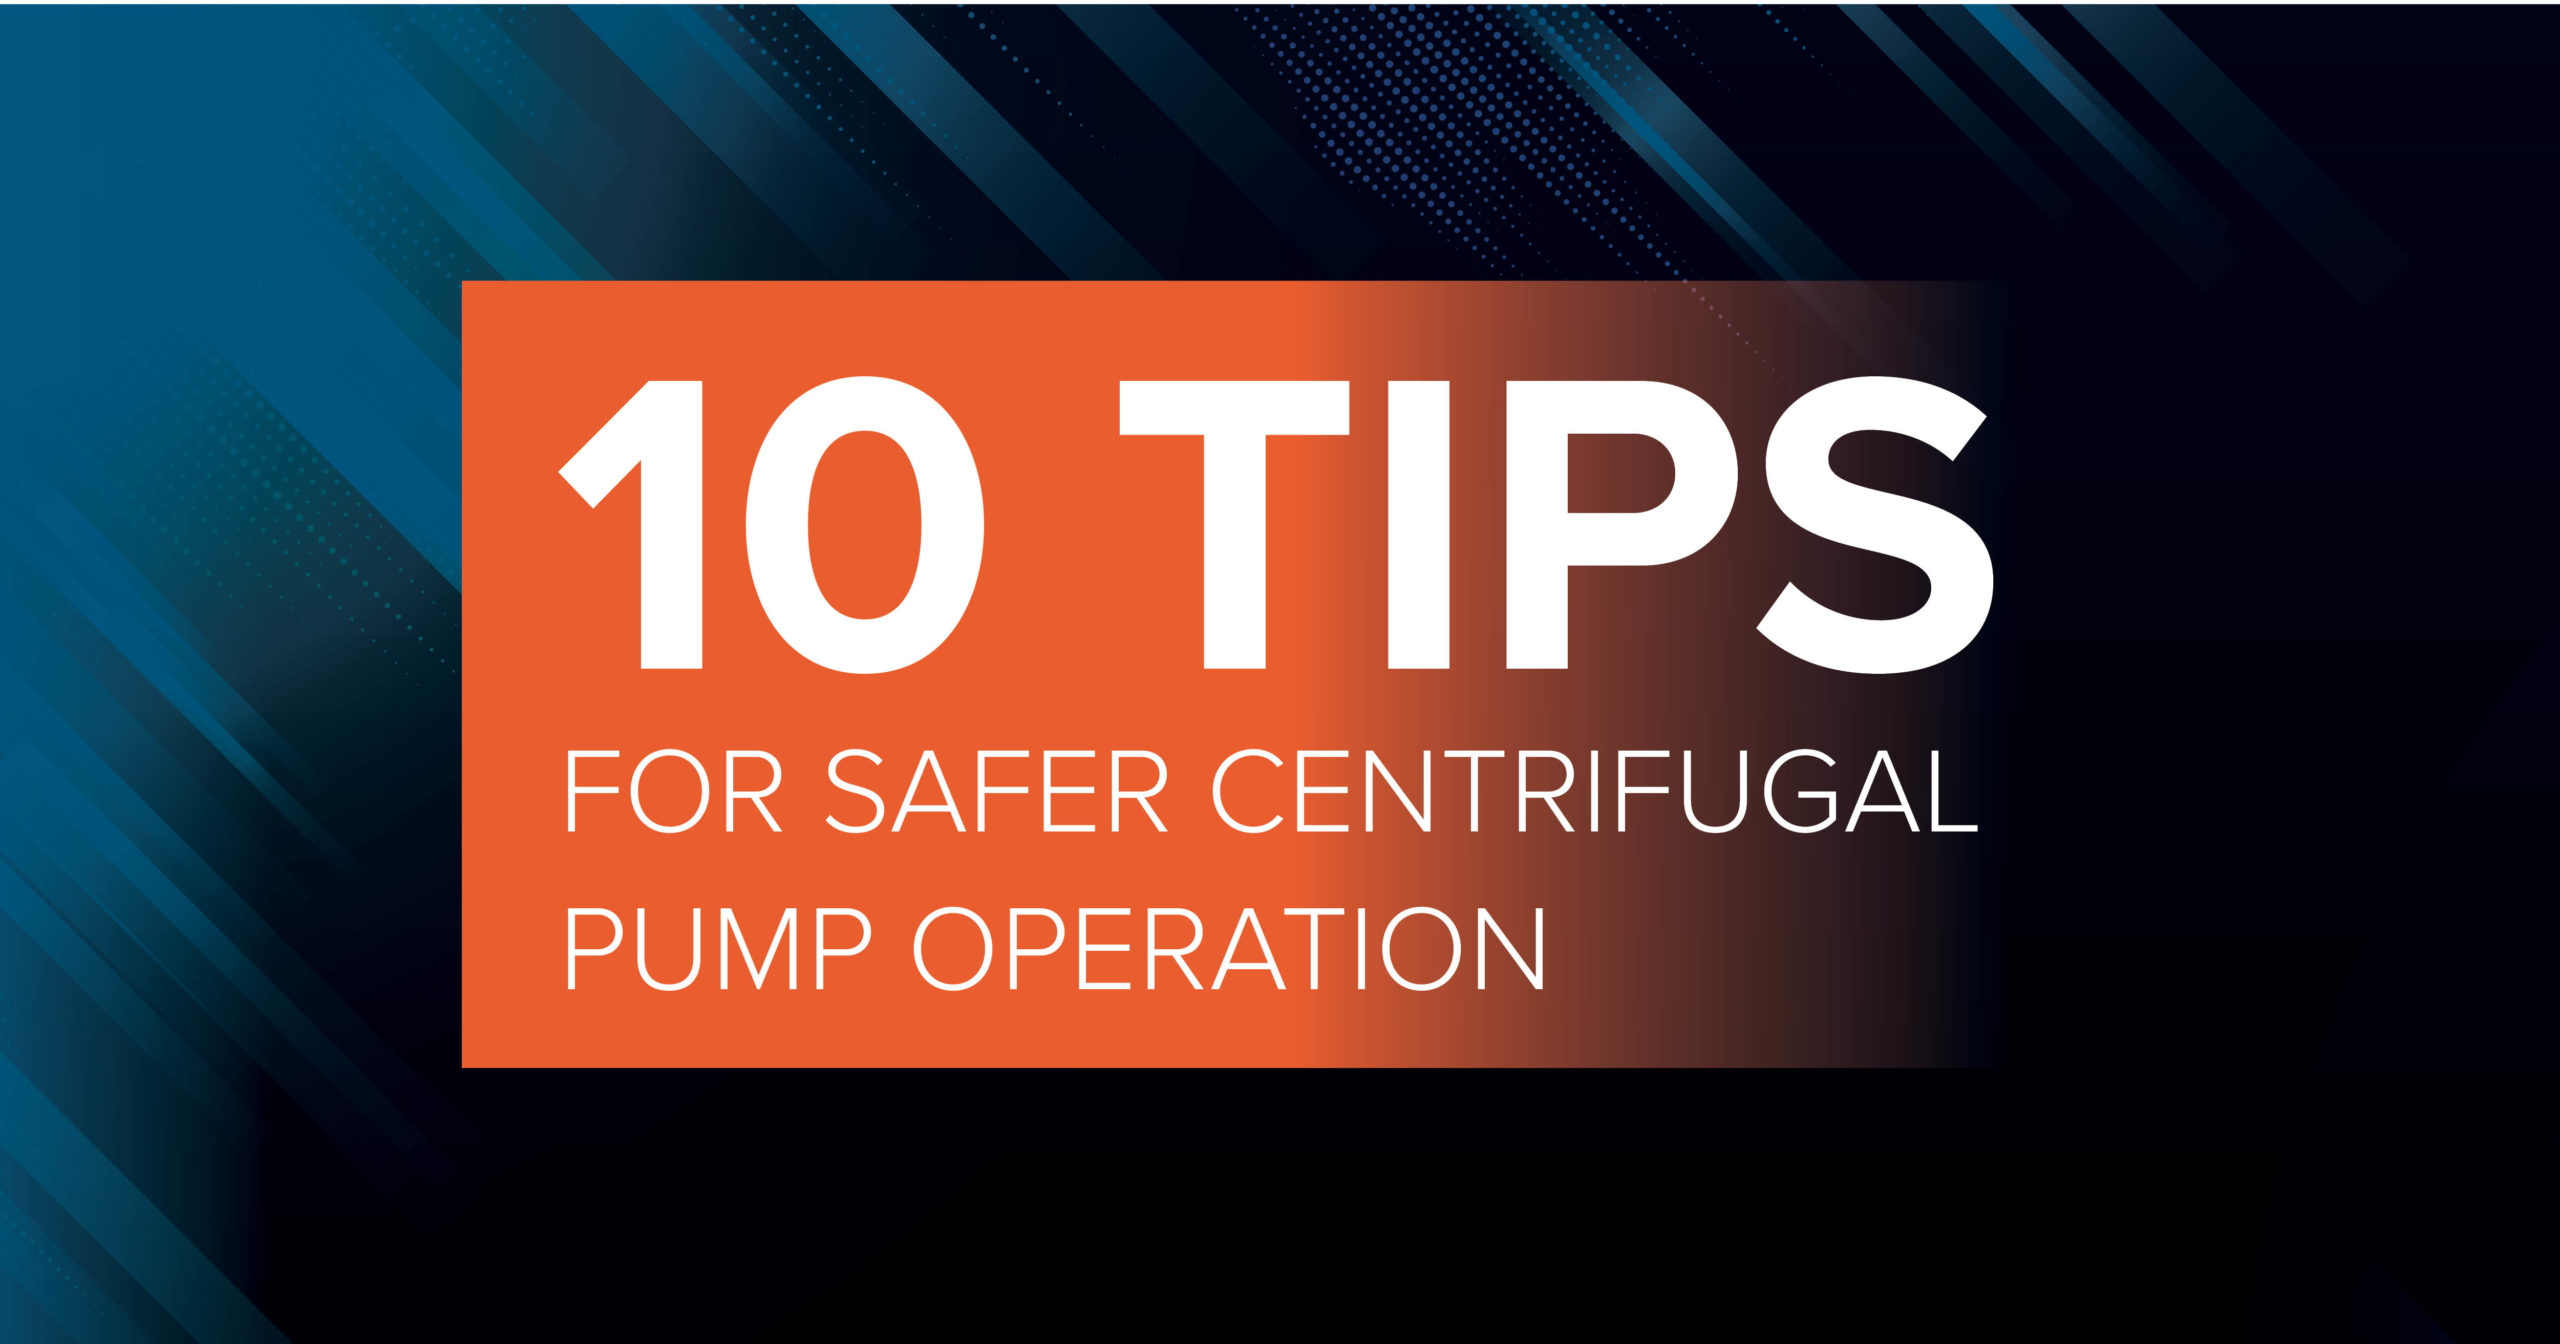 10 Tips for Safer Centrifugal Pump Operation